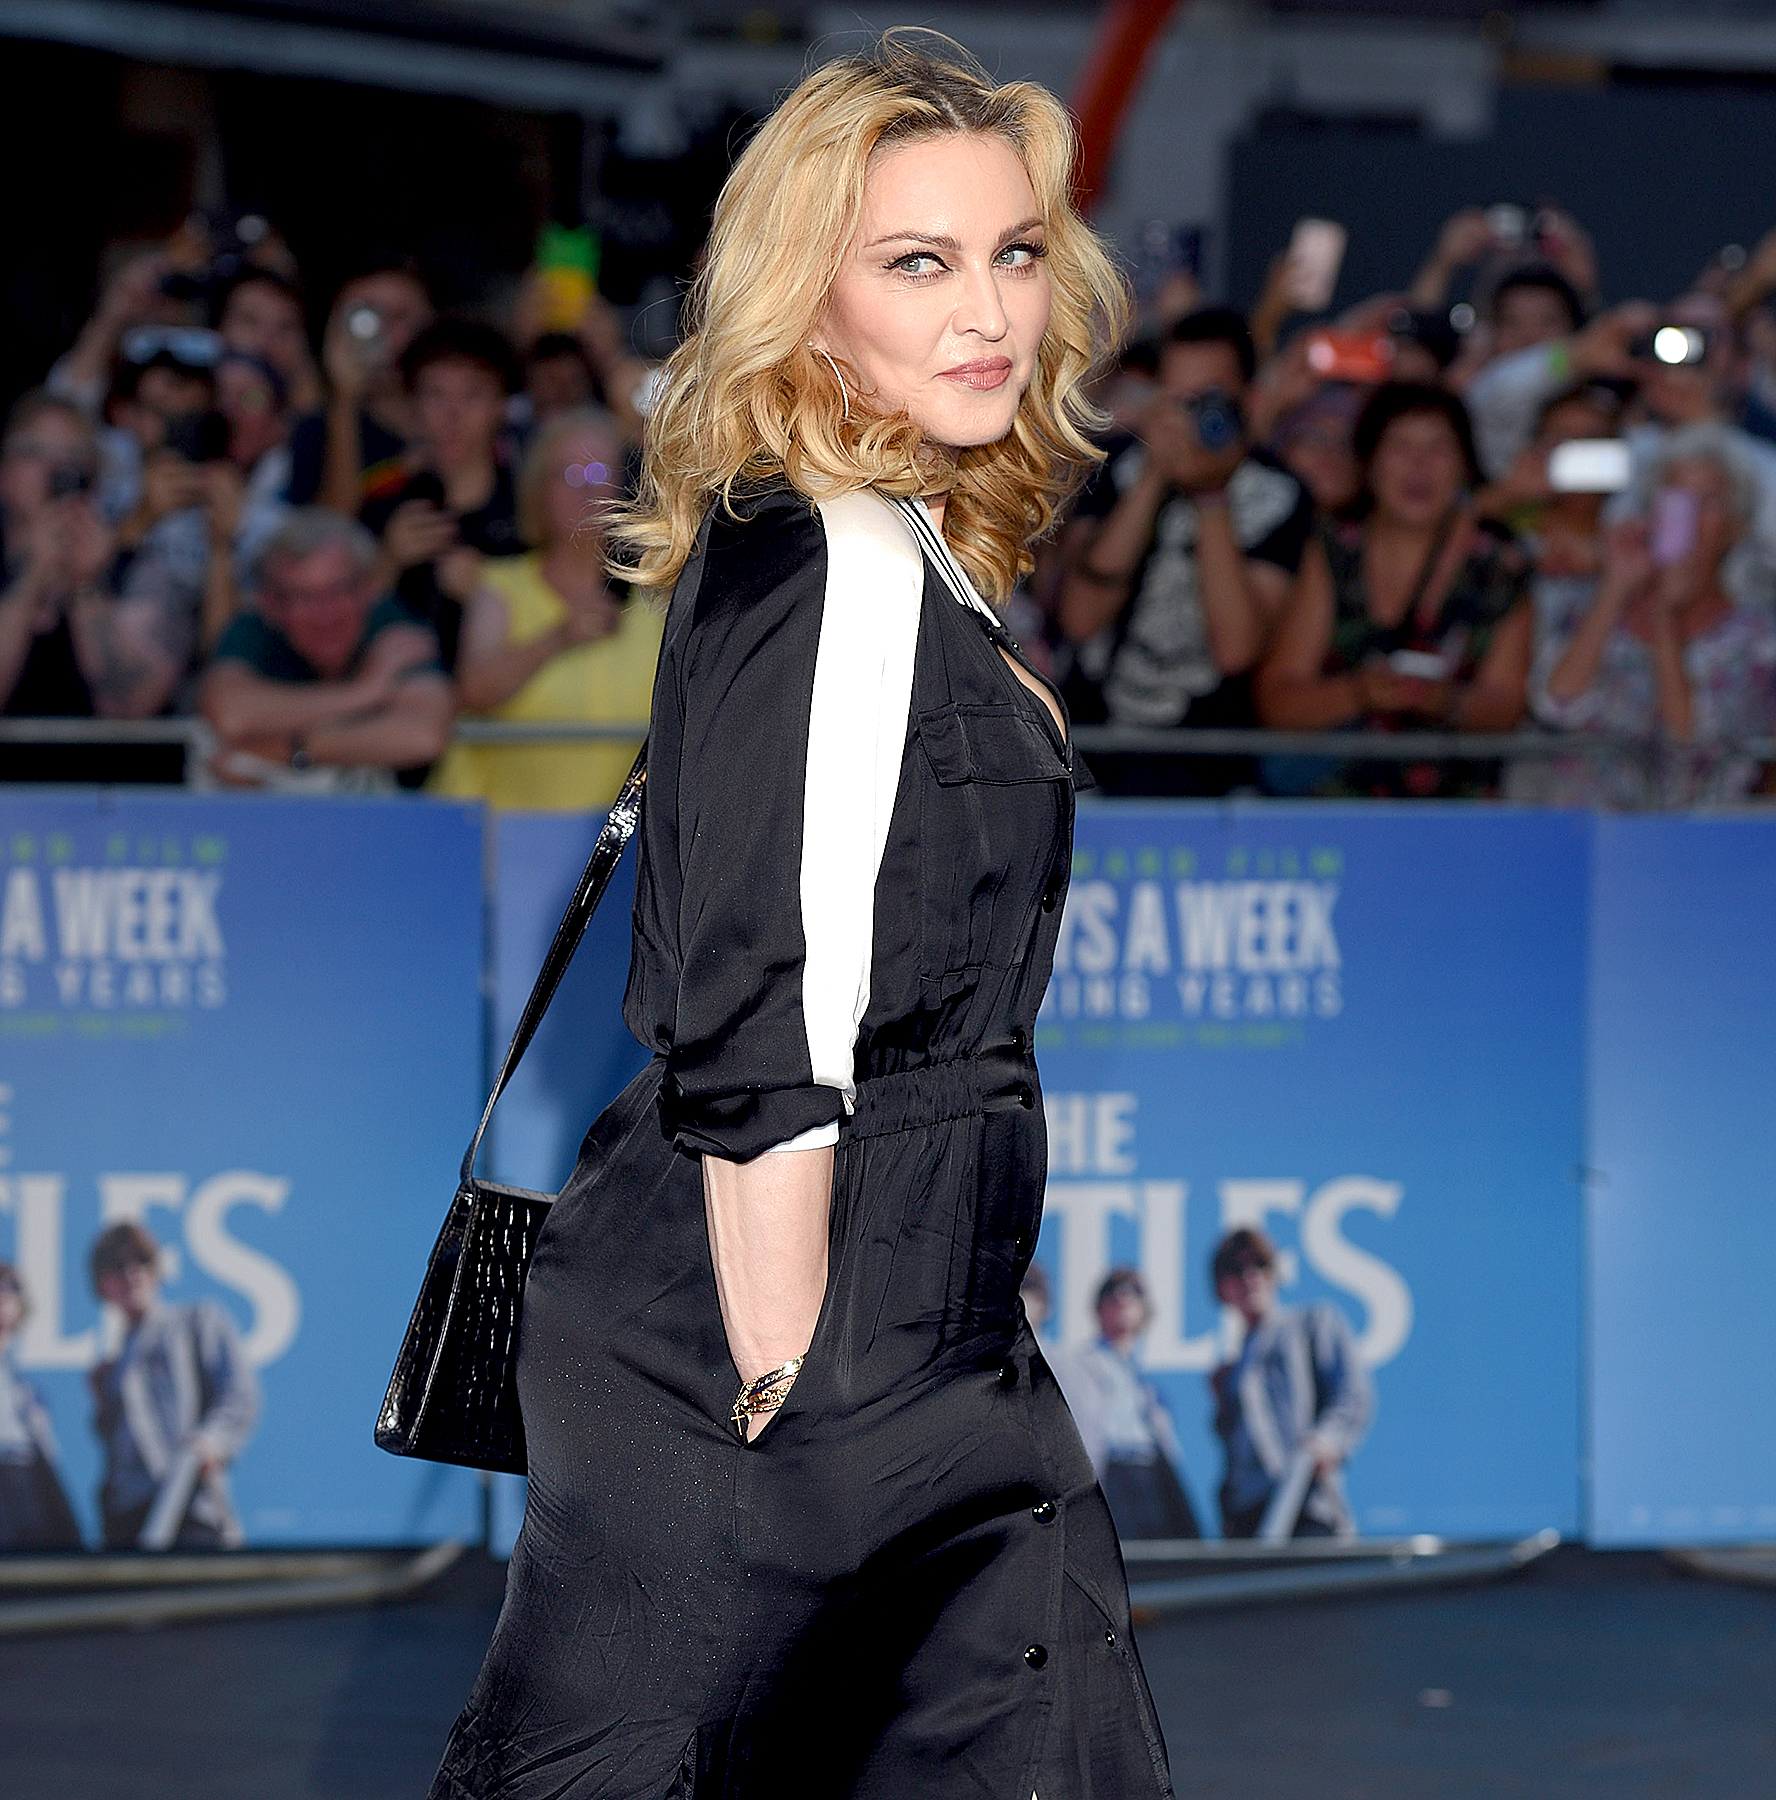 Madonna arrives for the World premiere of